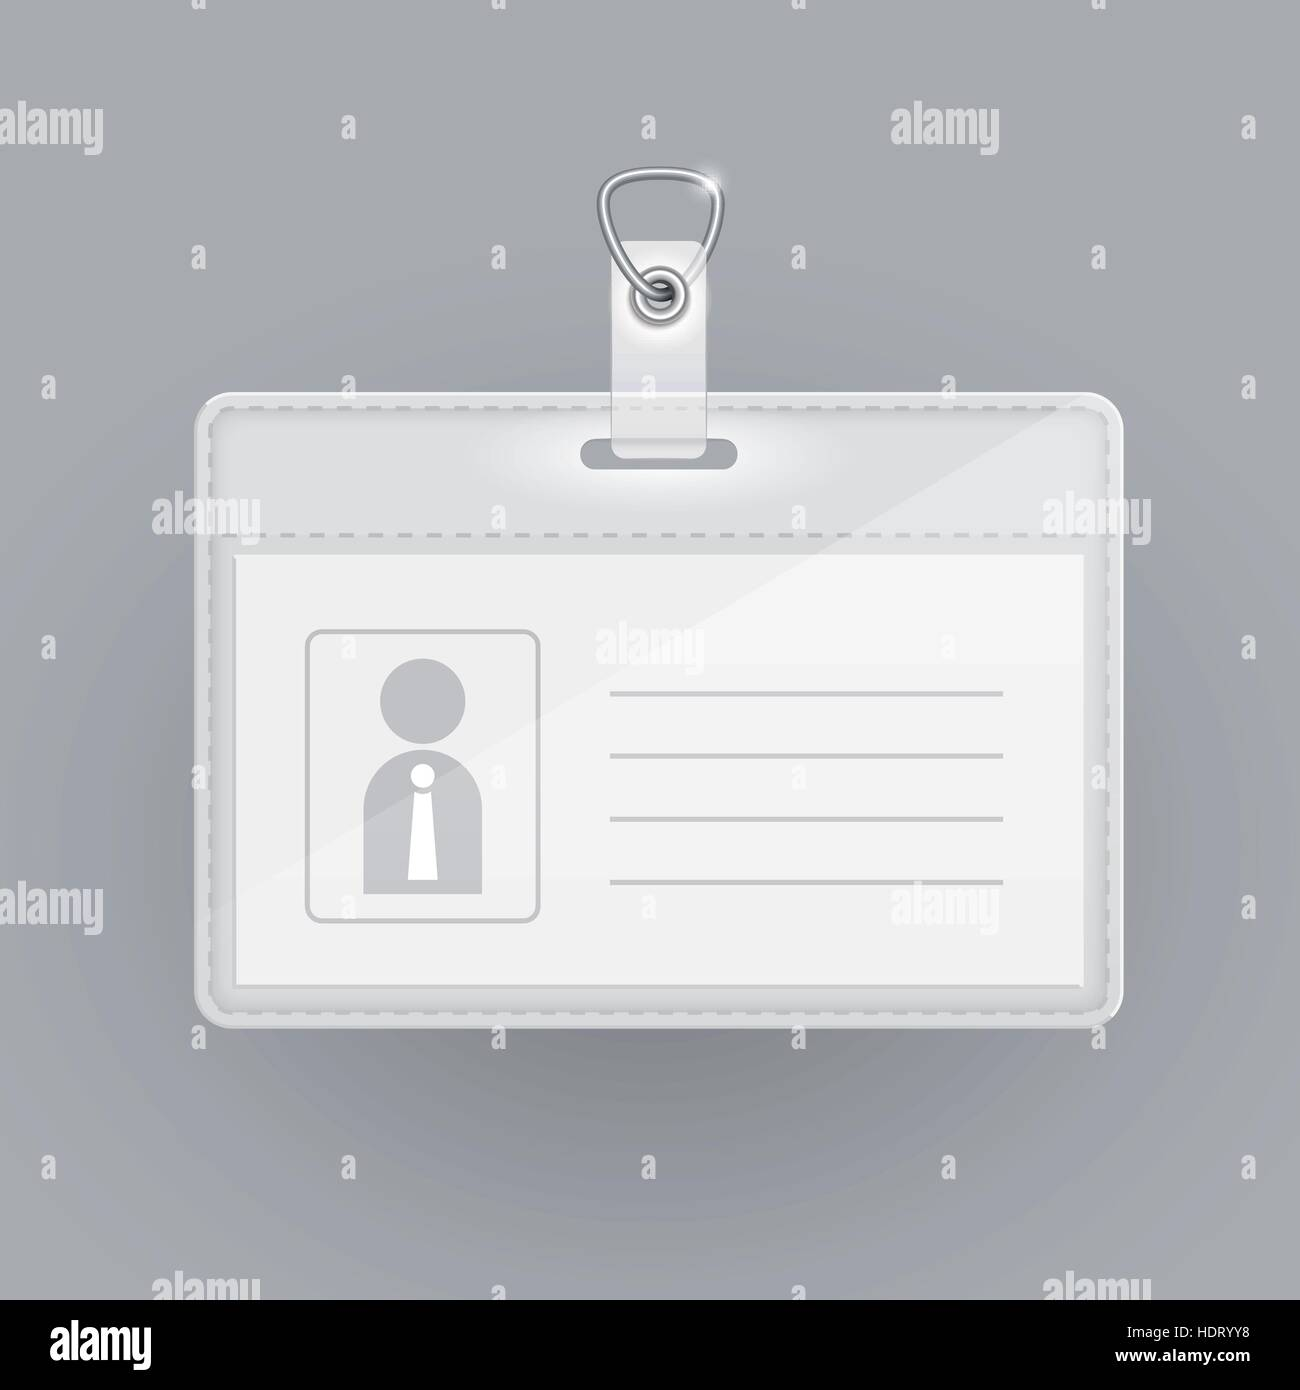 blank identification card template isolated on grey stock vector art